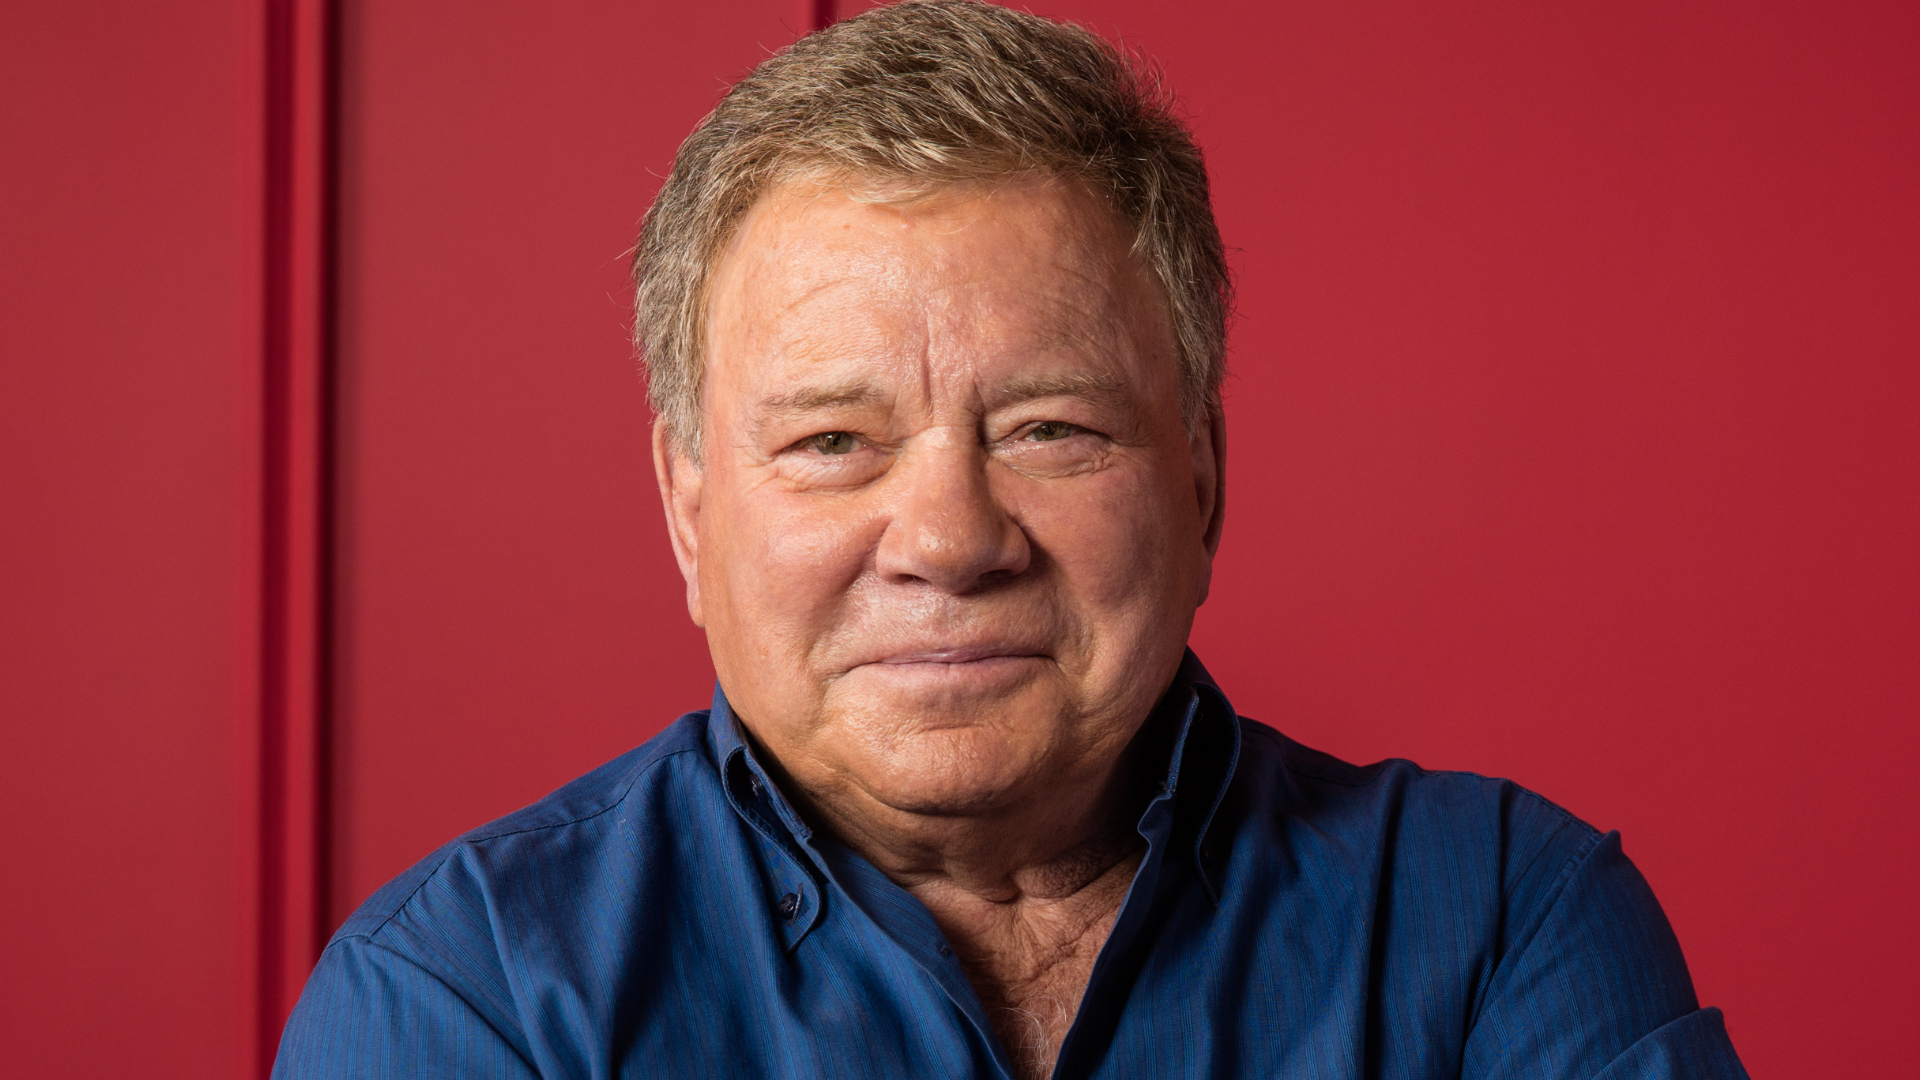 william shatner at 90 will become the oldest person going